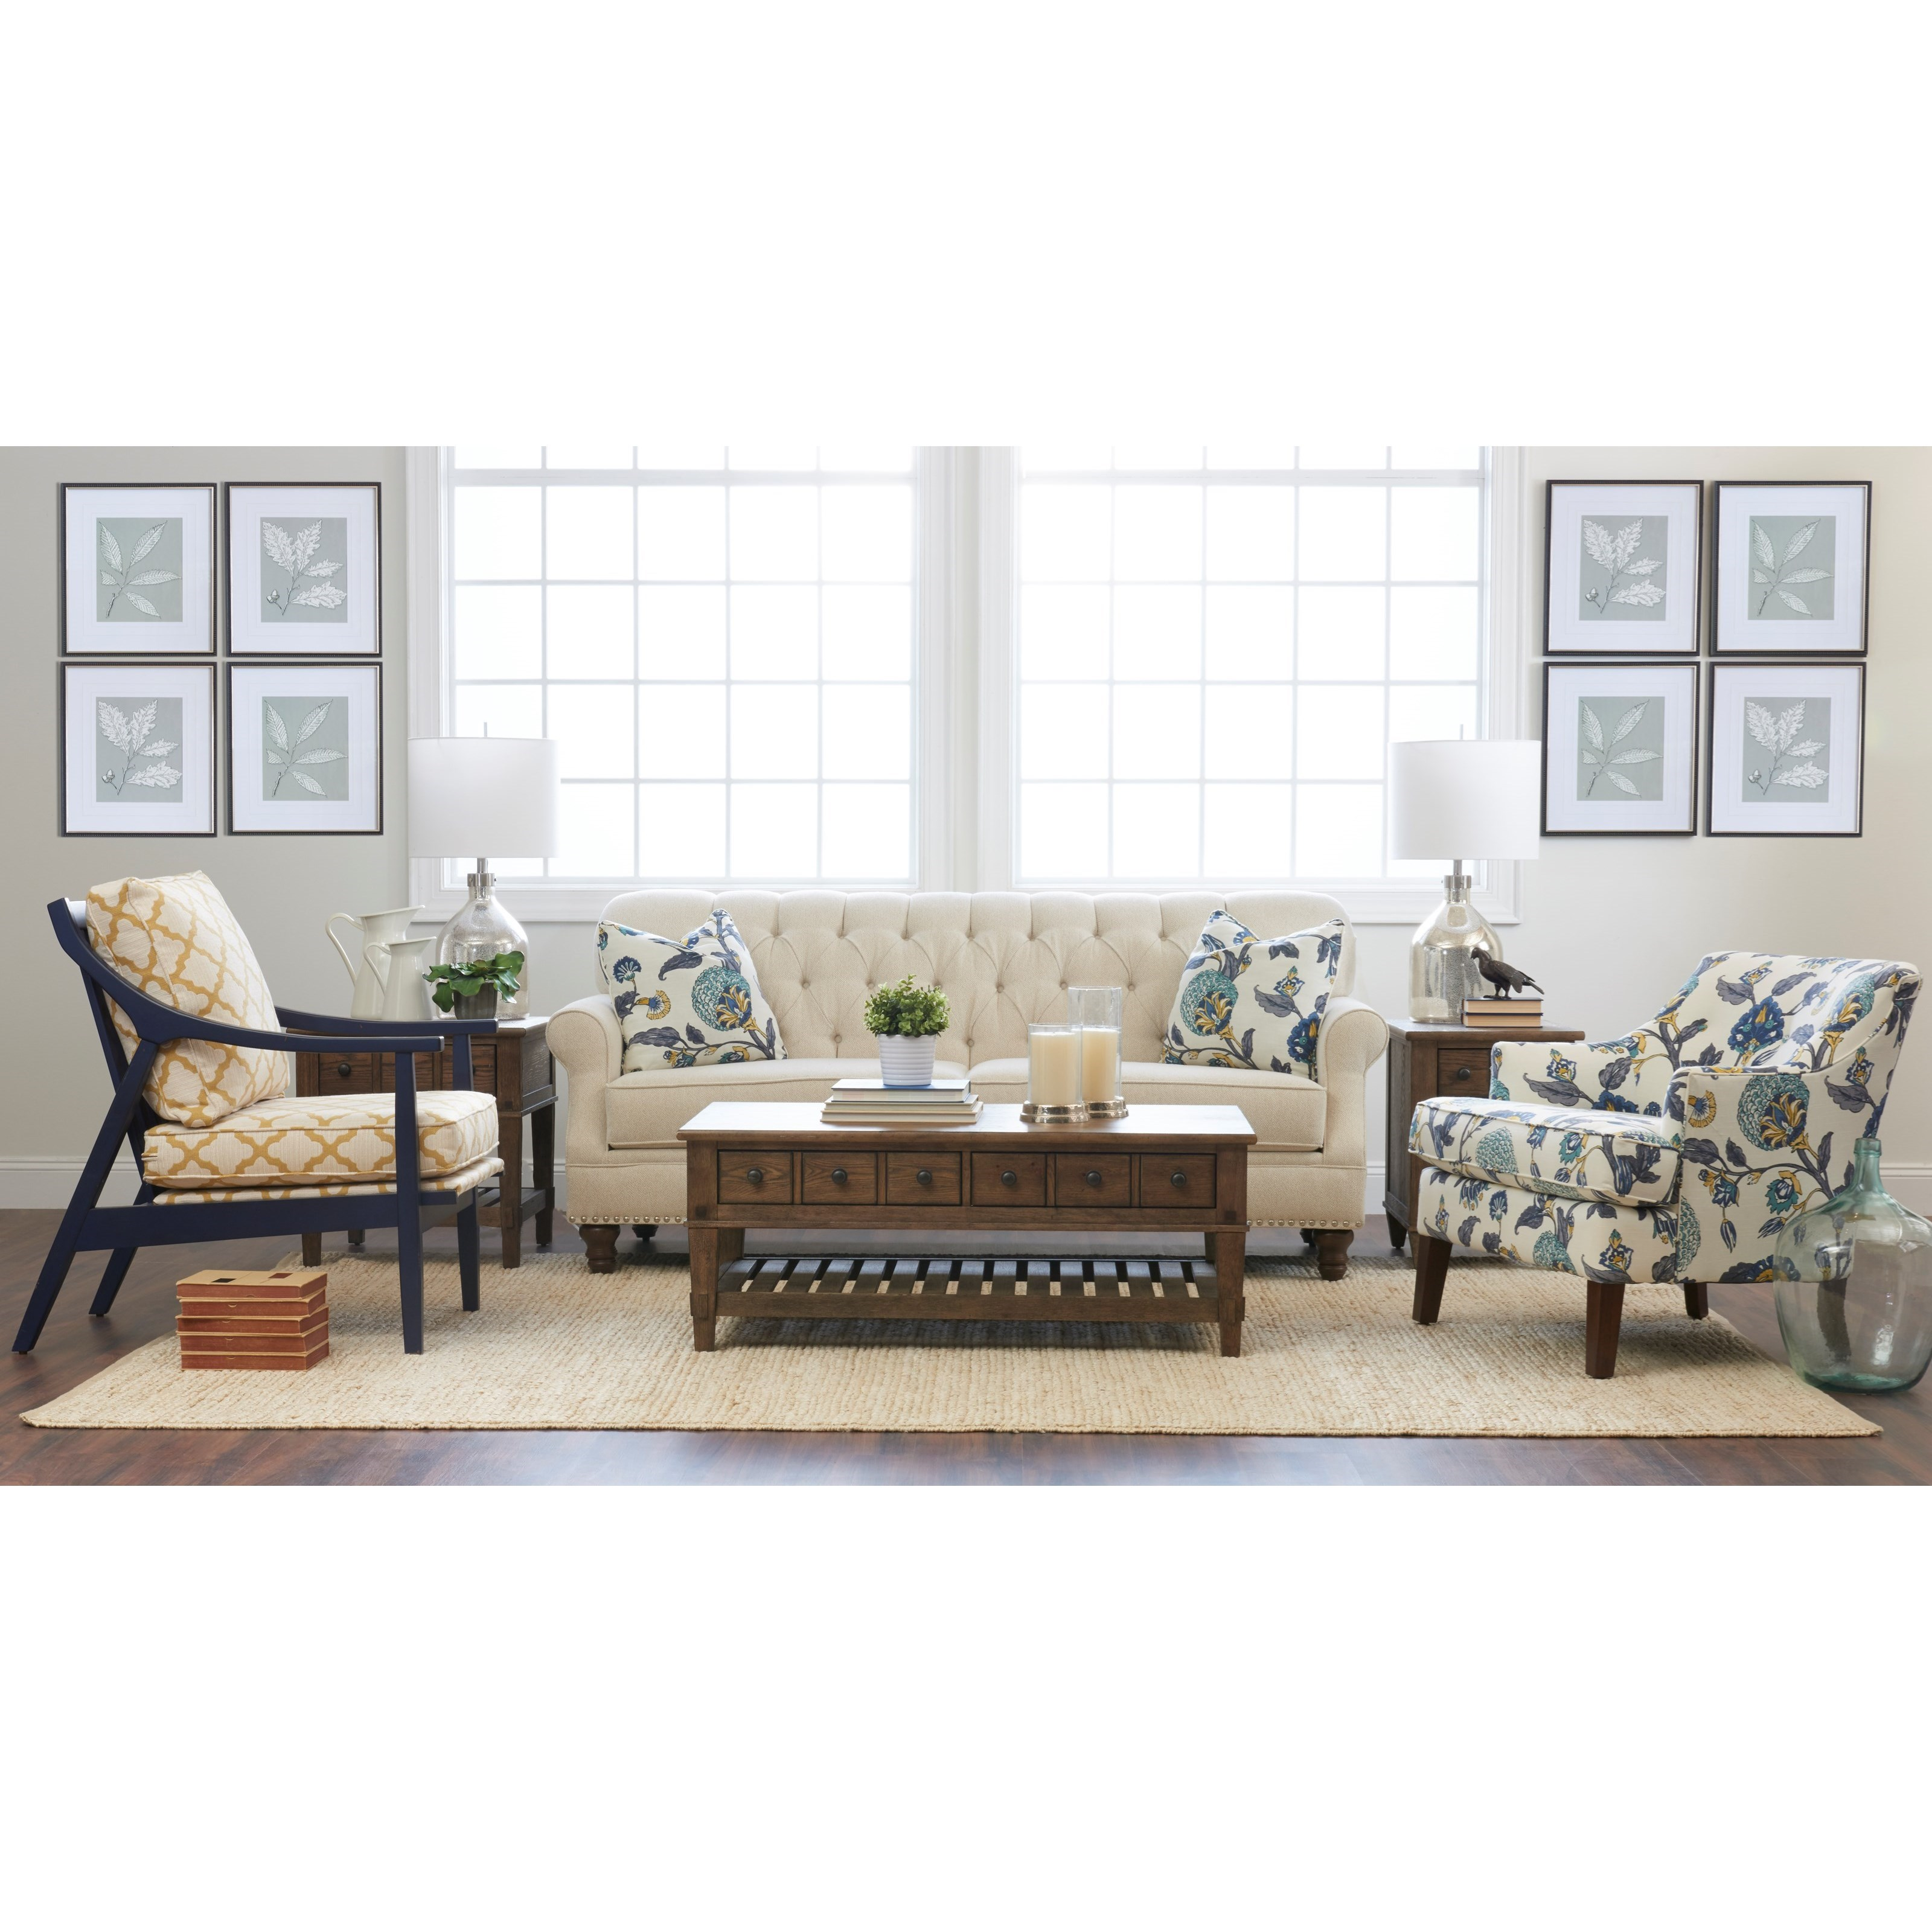 Klaussner burbank k96810 s traditional tufted apartment size sofa with nailheads dunk bright - Apartment size sectional sofa ...